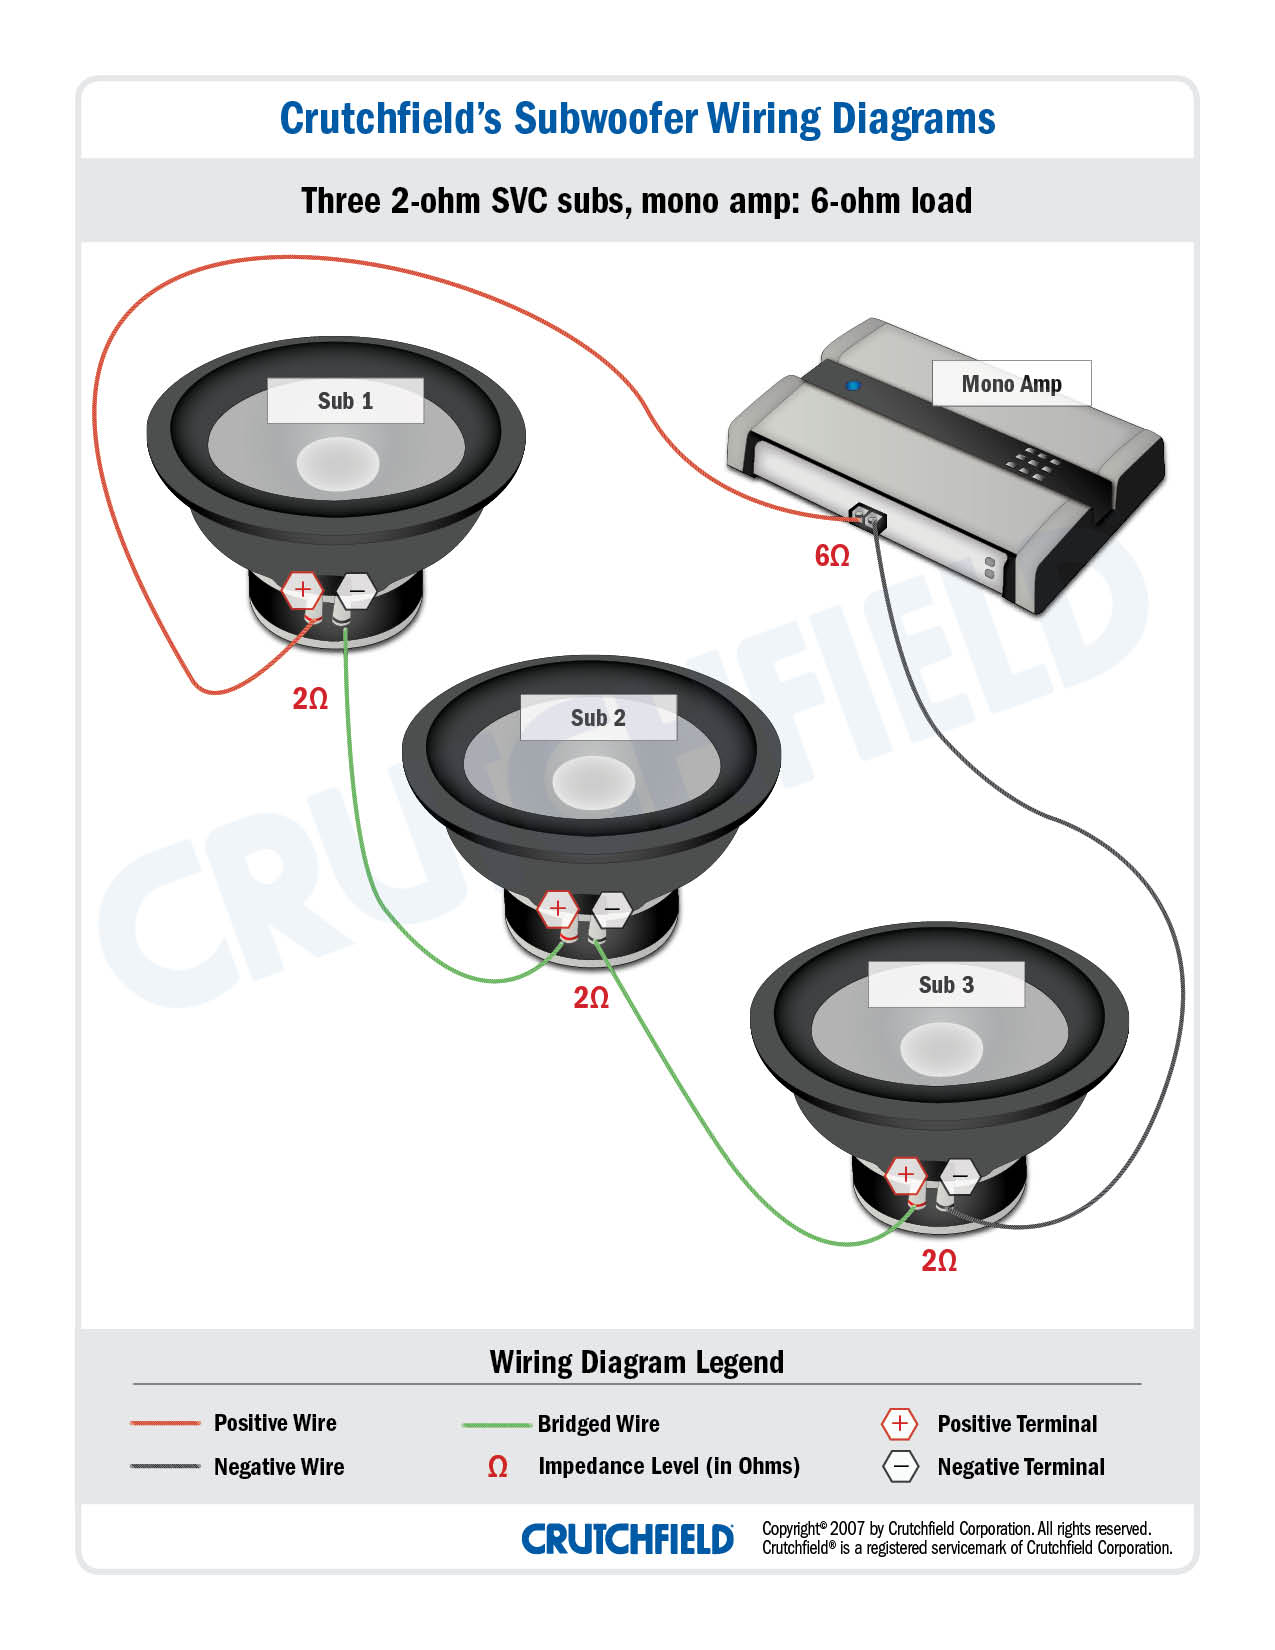 3 SVC 2 ohm mono 3 speaker wiring diagram car audio wiring diagrams \u2022 wiring Online Car Wiring Diagrams at panicattacktreatment.co